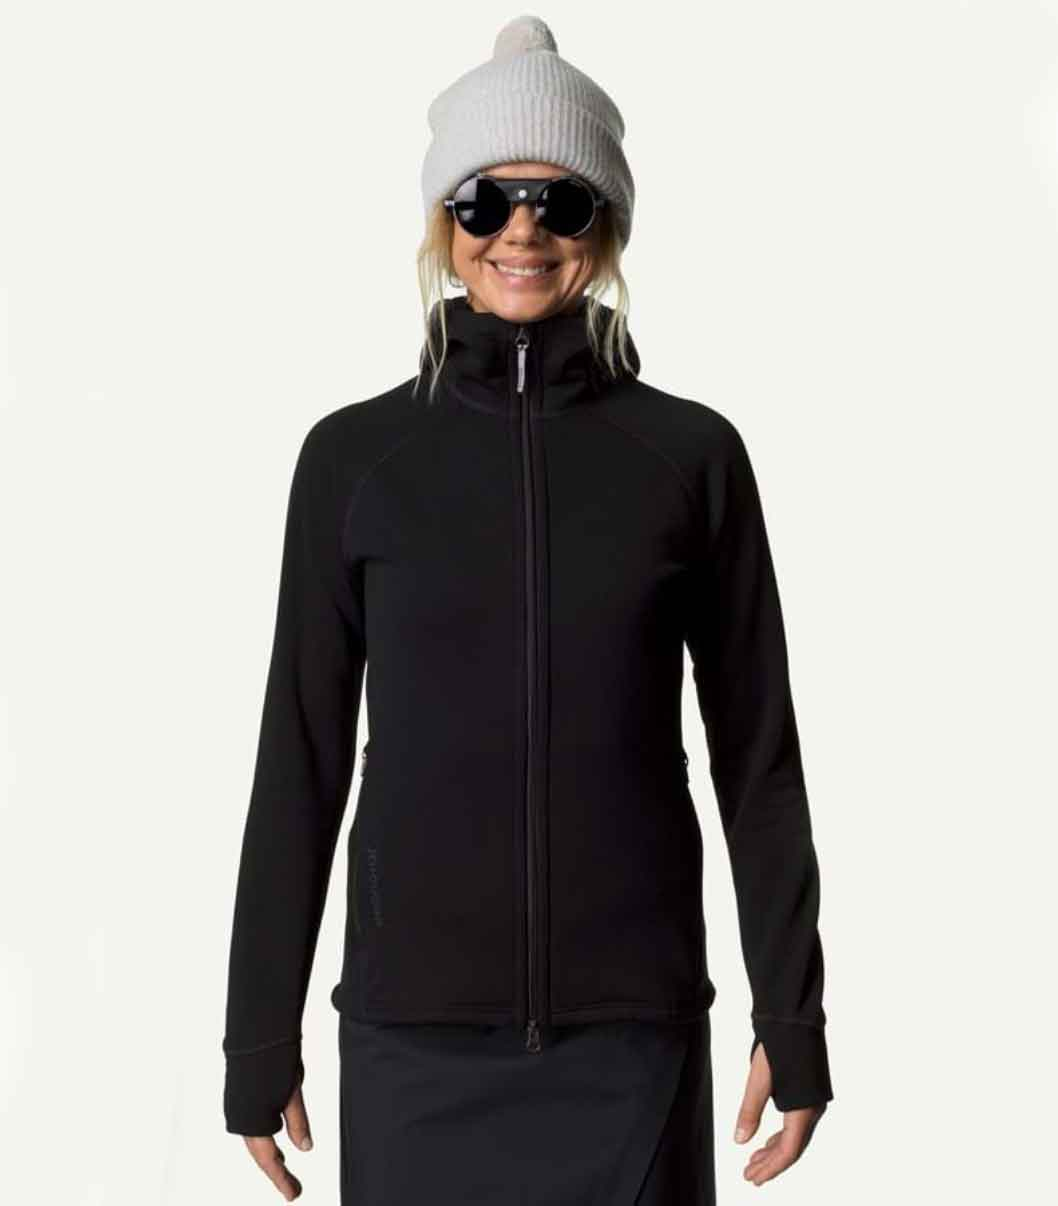 HOUDINI SPORTSWEAR swedish sustainable outdoor brand good fashion guide ECOLOOKBOOK